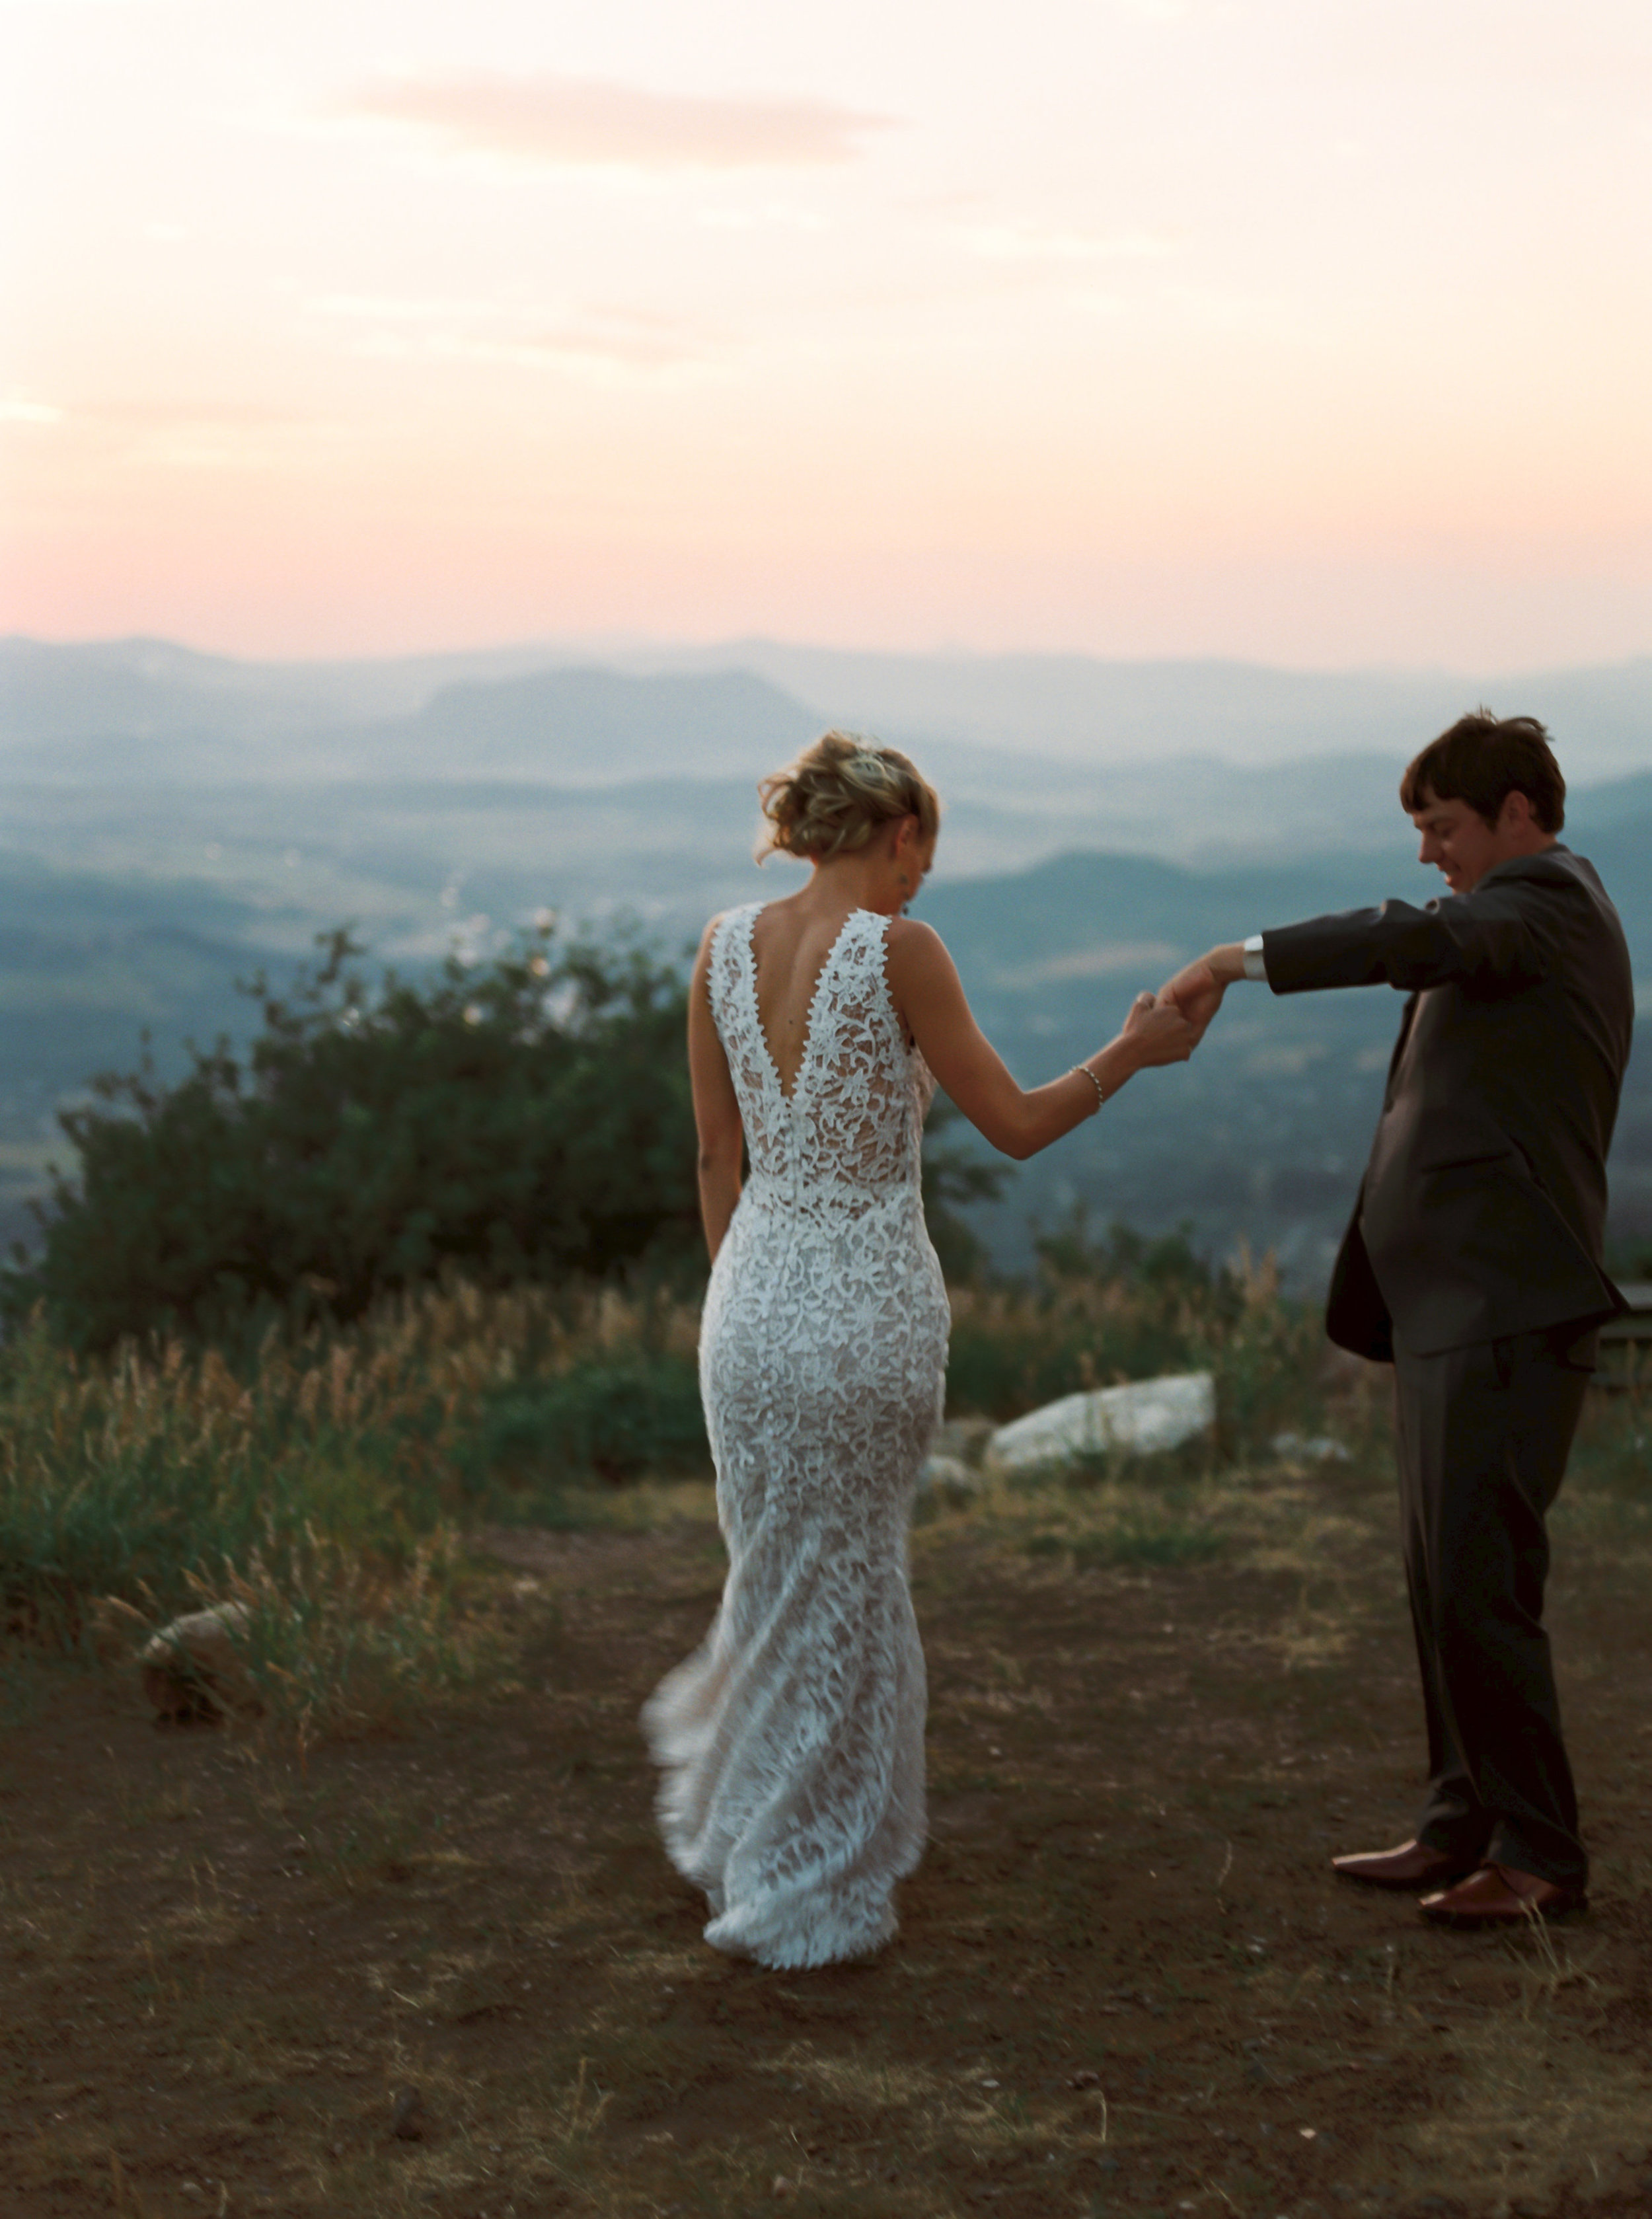 Caitlin | Steamboat Ski Resort, Steamboat Springs, CO |  Sara Lynn Photo